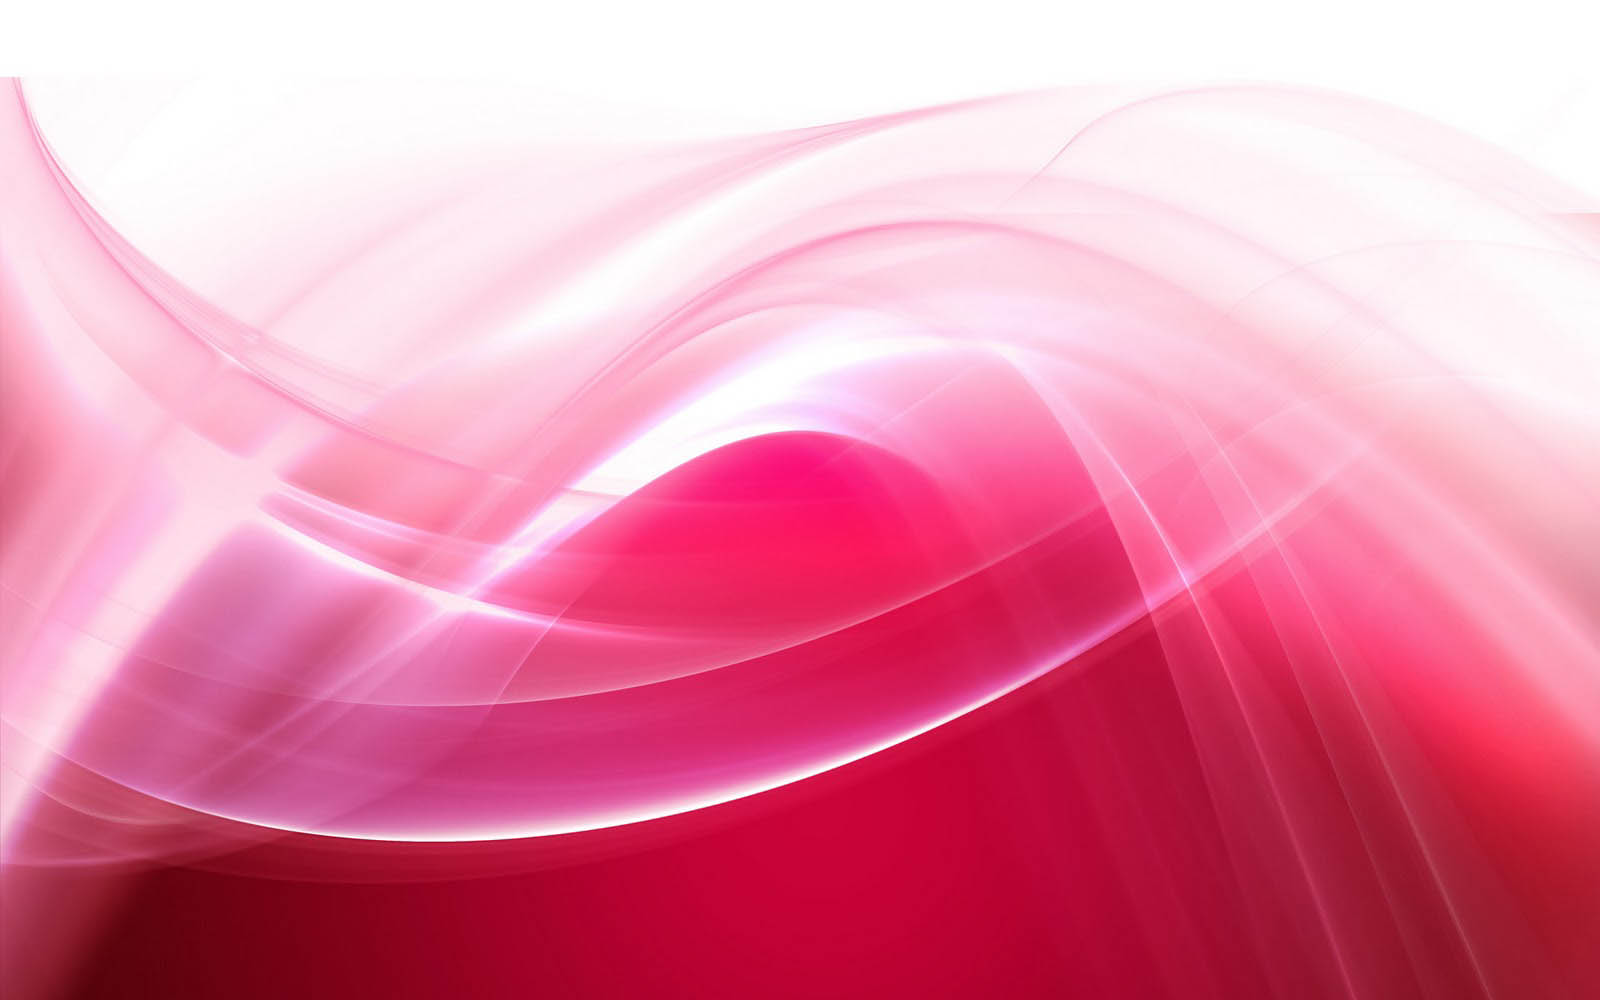 pink mac wallpaper hd - photo #34